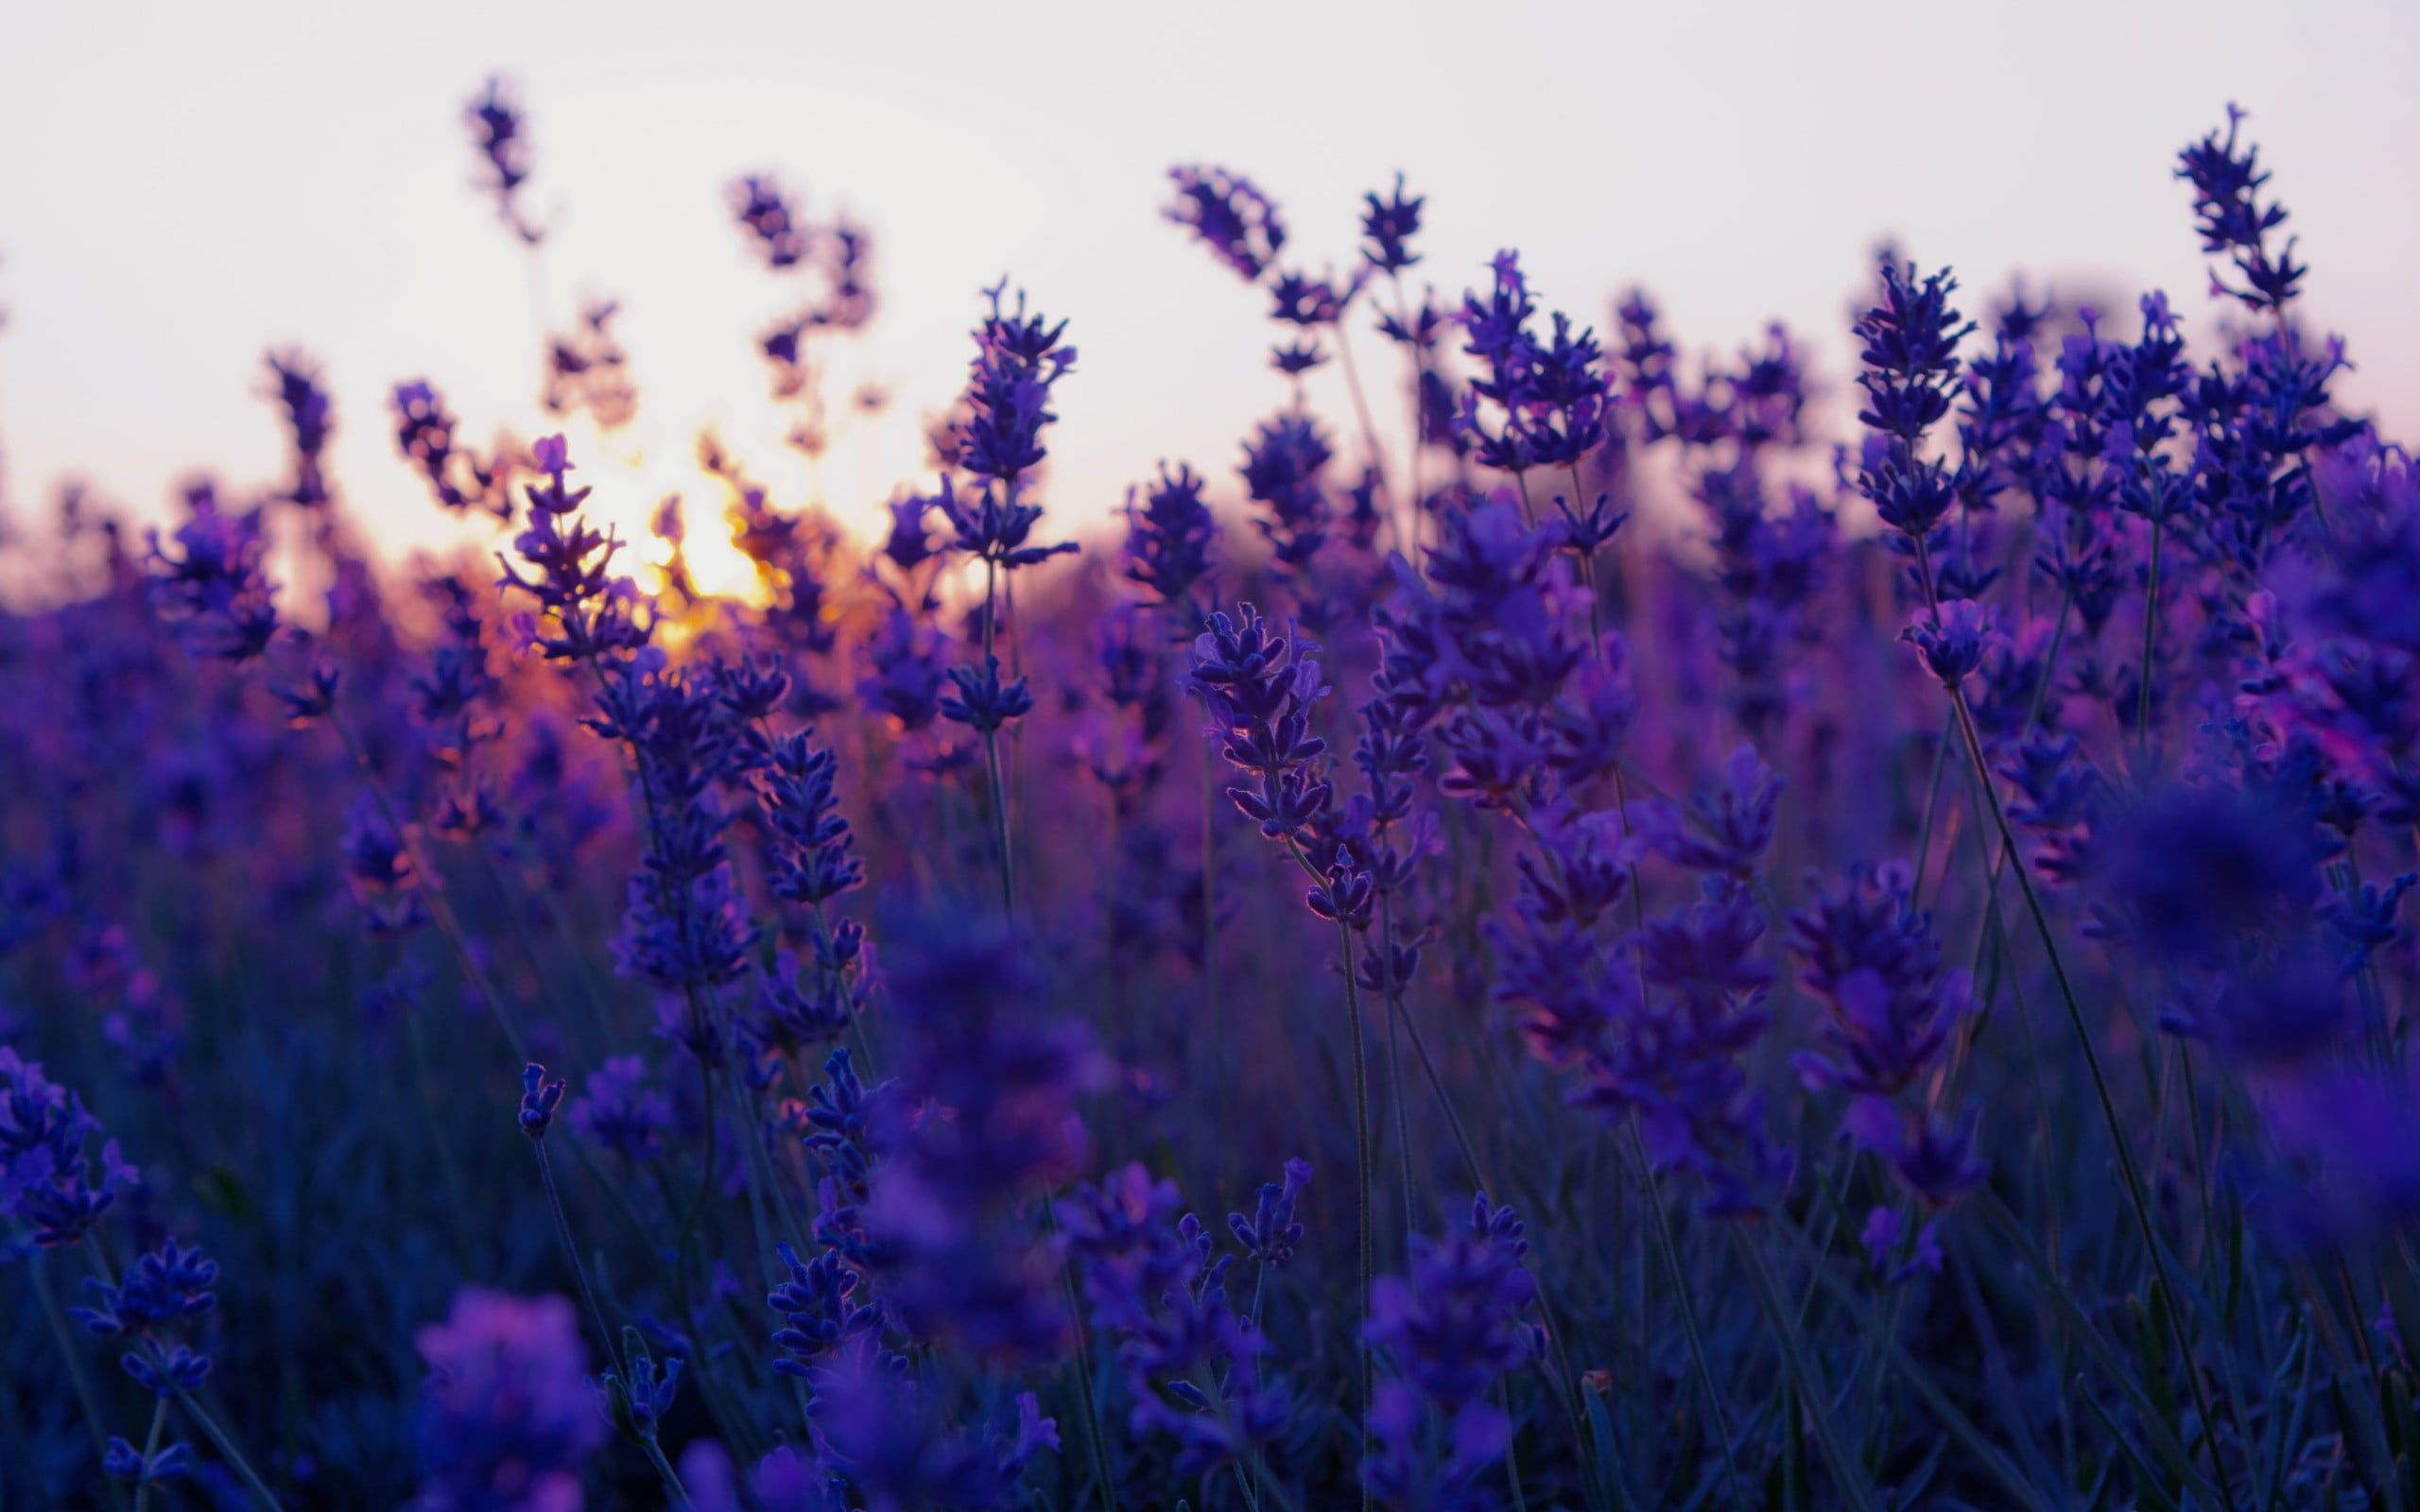 Bed Of Purple Petaled Flower Nature Flowers Landscape Lavender Purple Flowers 2 In 2020 Flower Background Wallpaper Purple Flowers Wallpaper Aesthetic Backgrounds